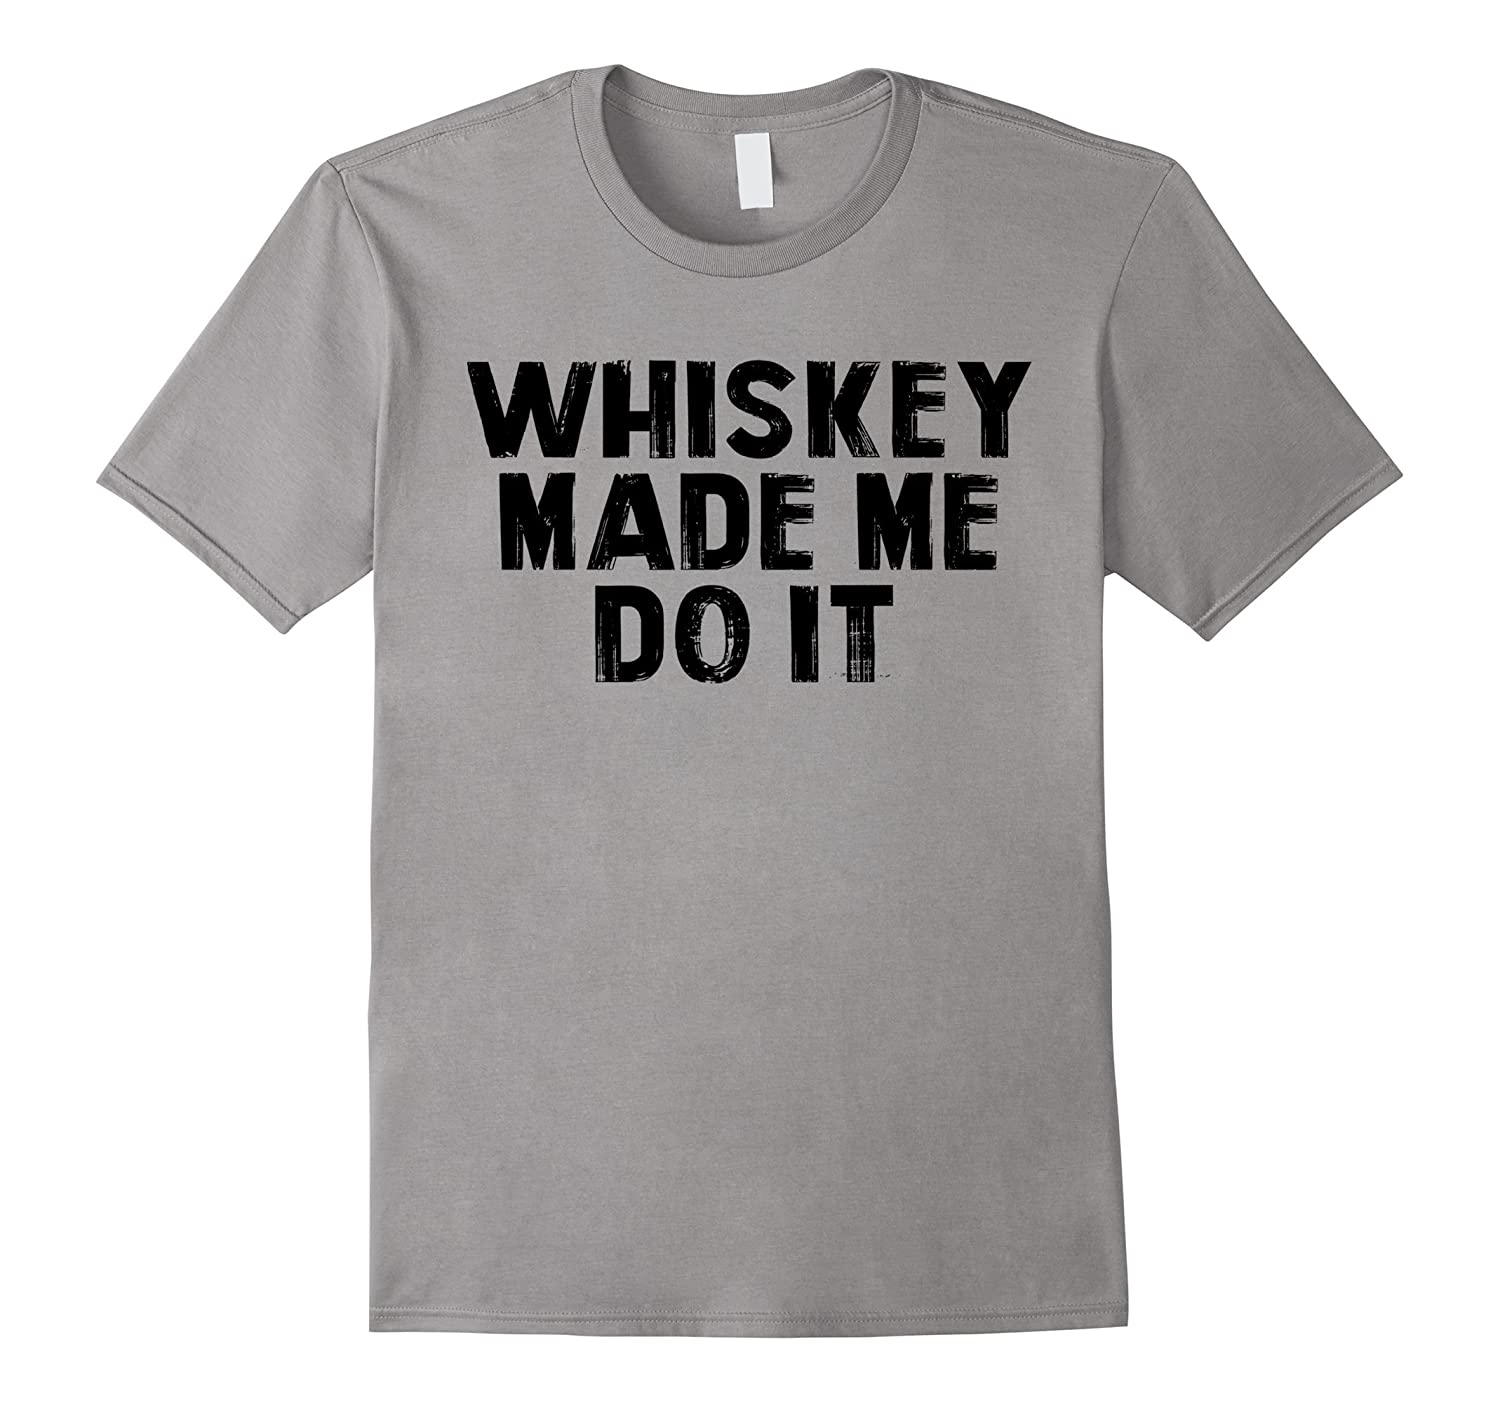 Whiskey Made Me Do It Funny Graphic Tee Black Ink-Rose